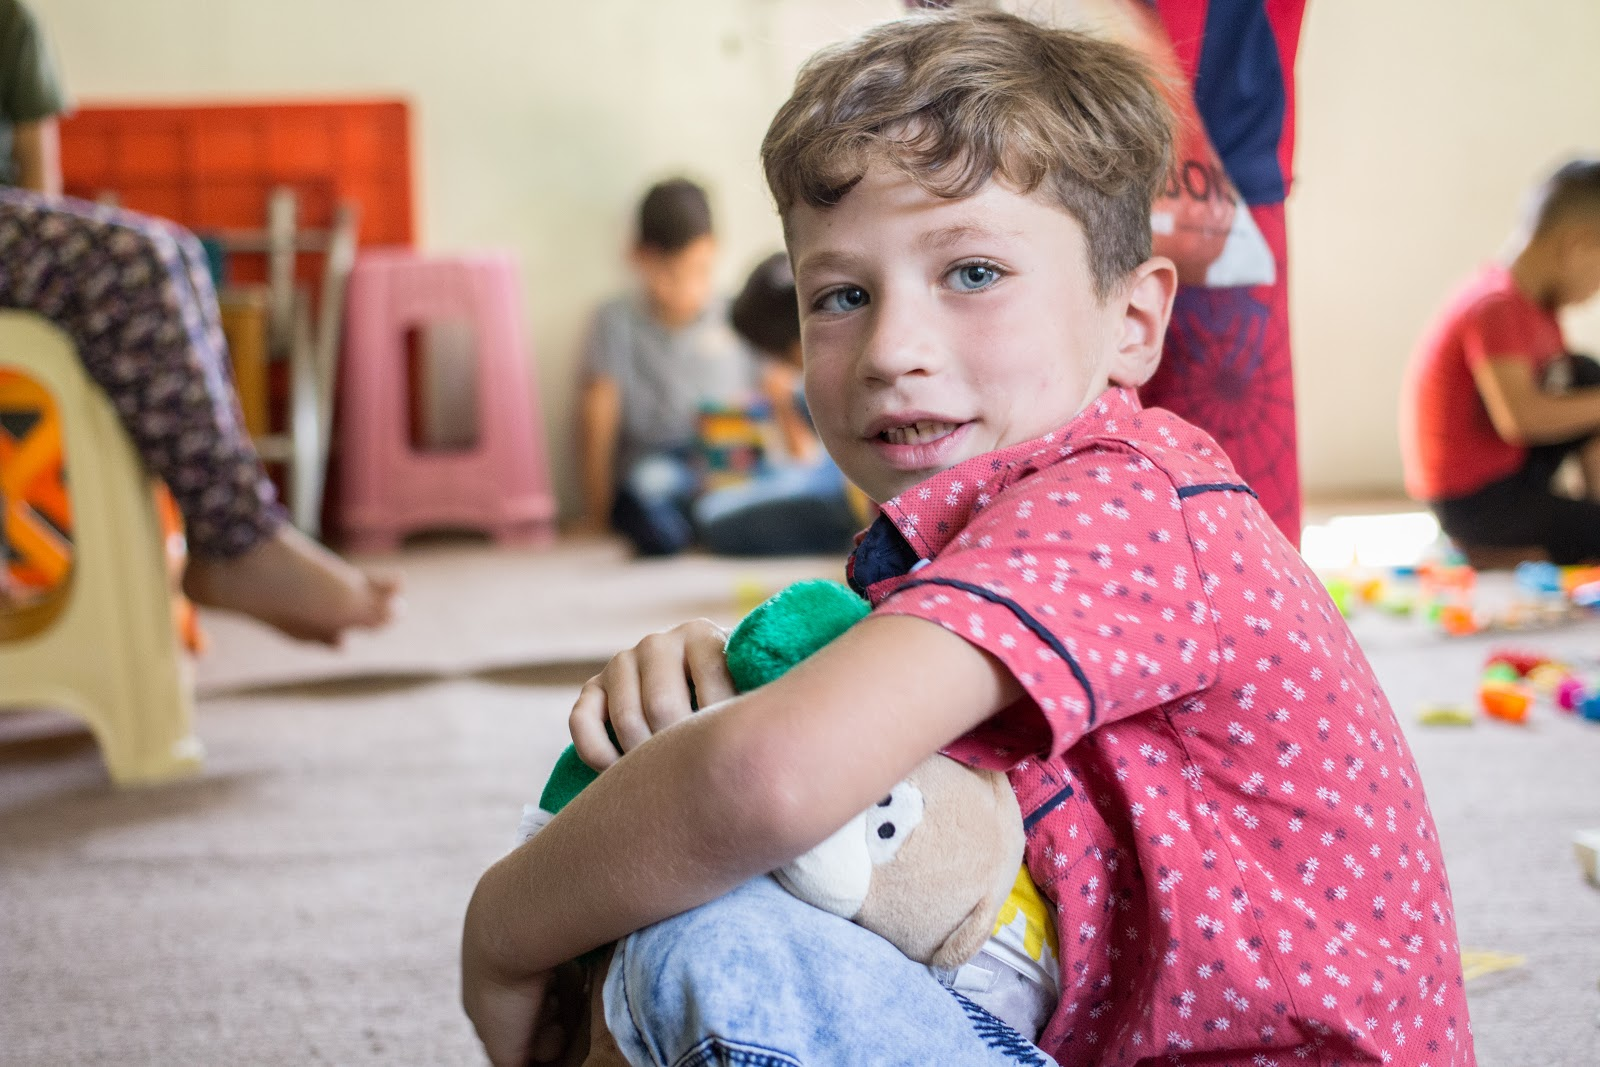 Mohammad at the Child Friendly Space inside the refugee camp, 2018.